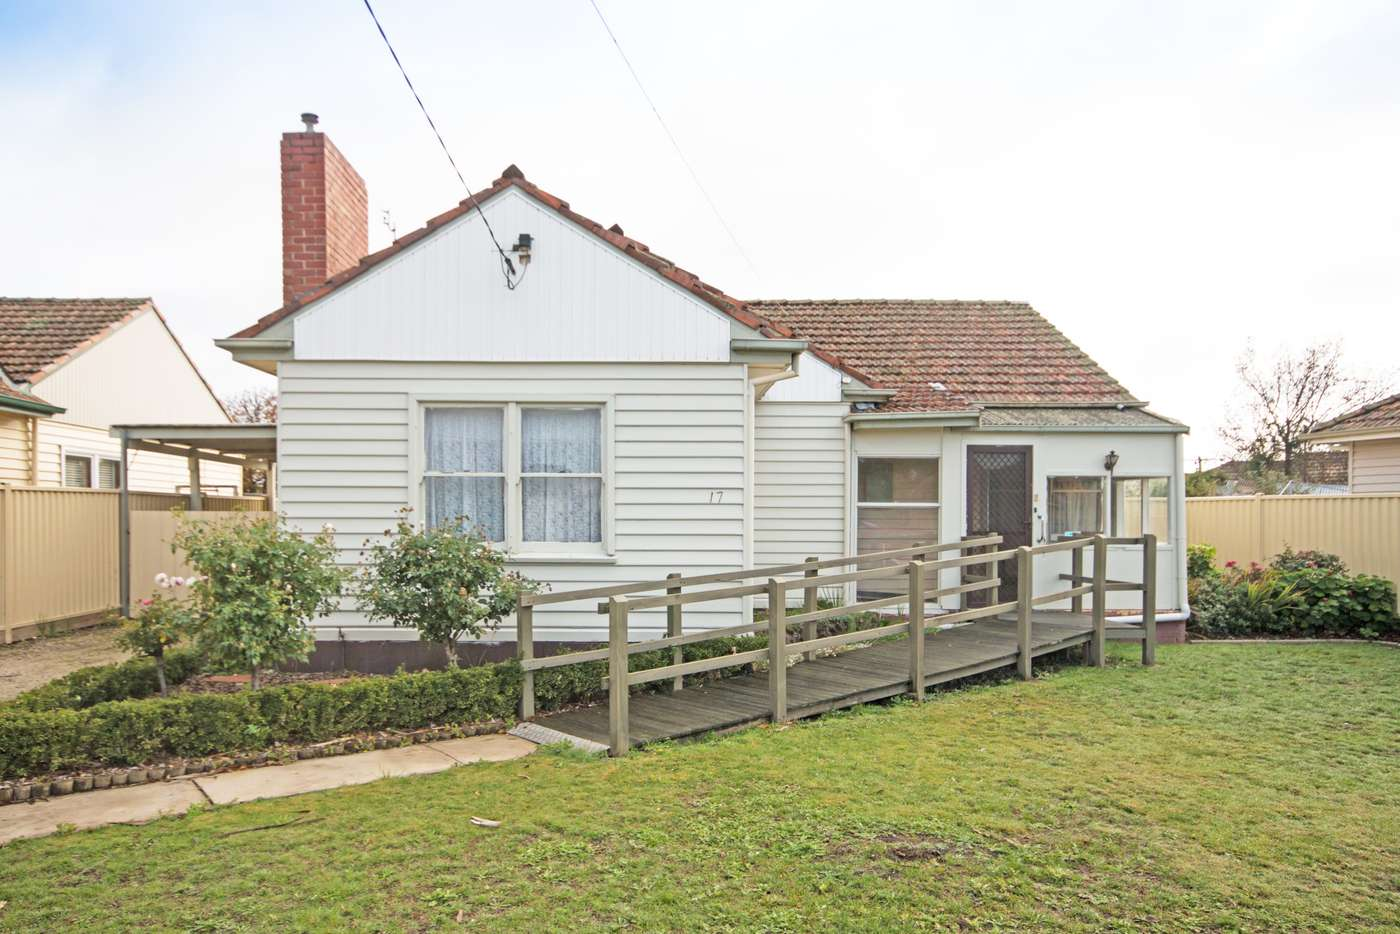 Main view of Homely house listing, 17 Sayle Street, Sebastopol VIC 3356